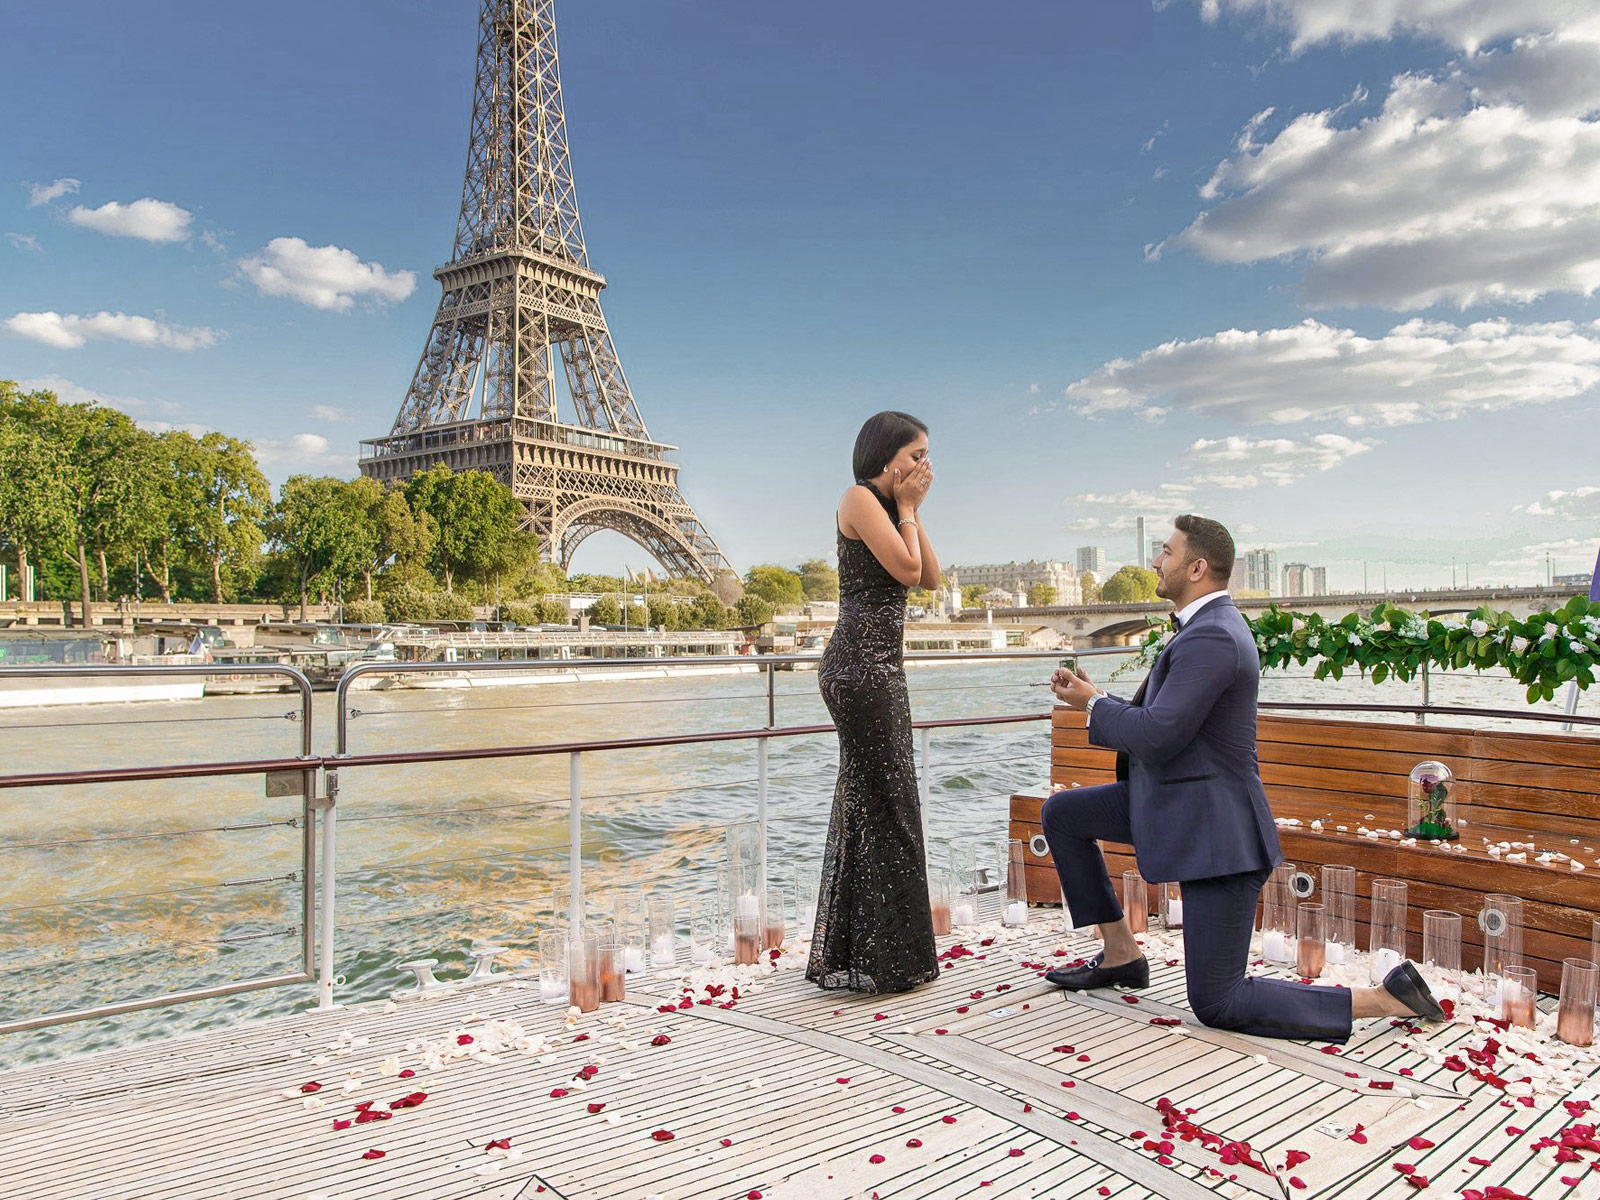 Marriage Proposal Ideas: Where to Propose in Paris | Nat & Mase's Travel  Blog